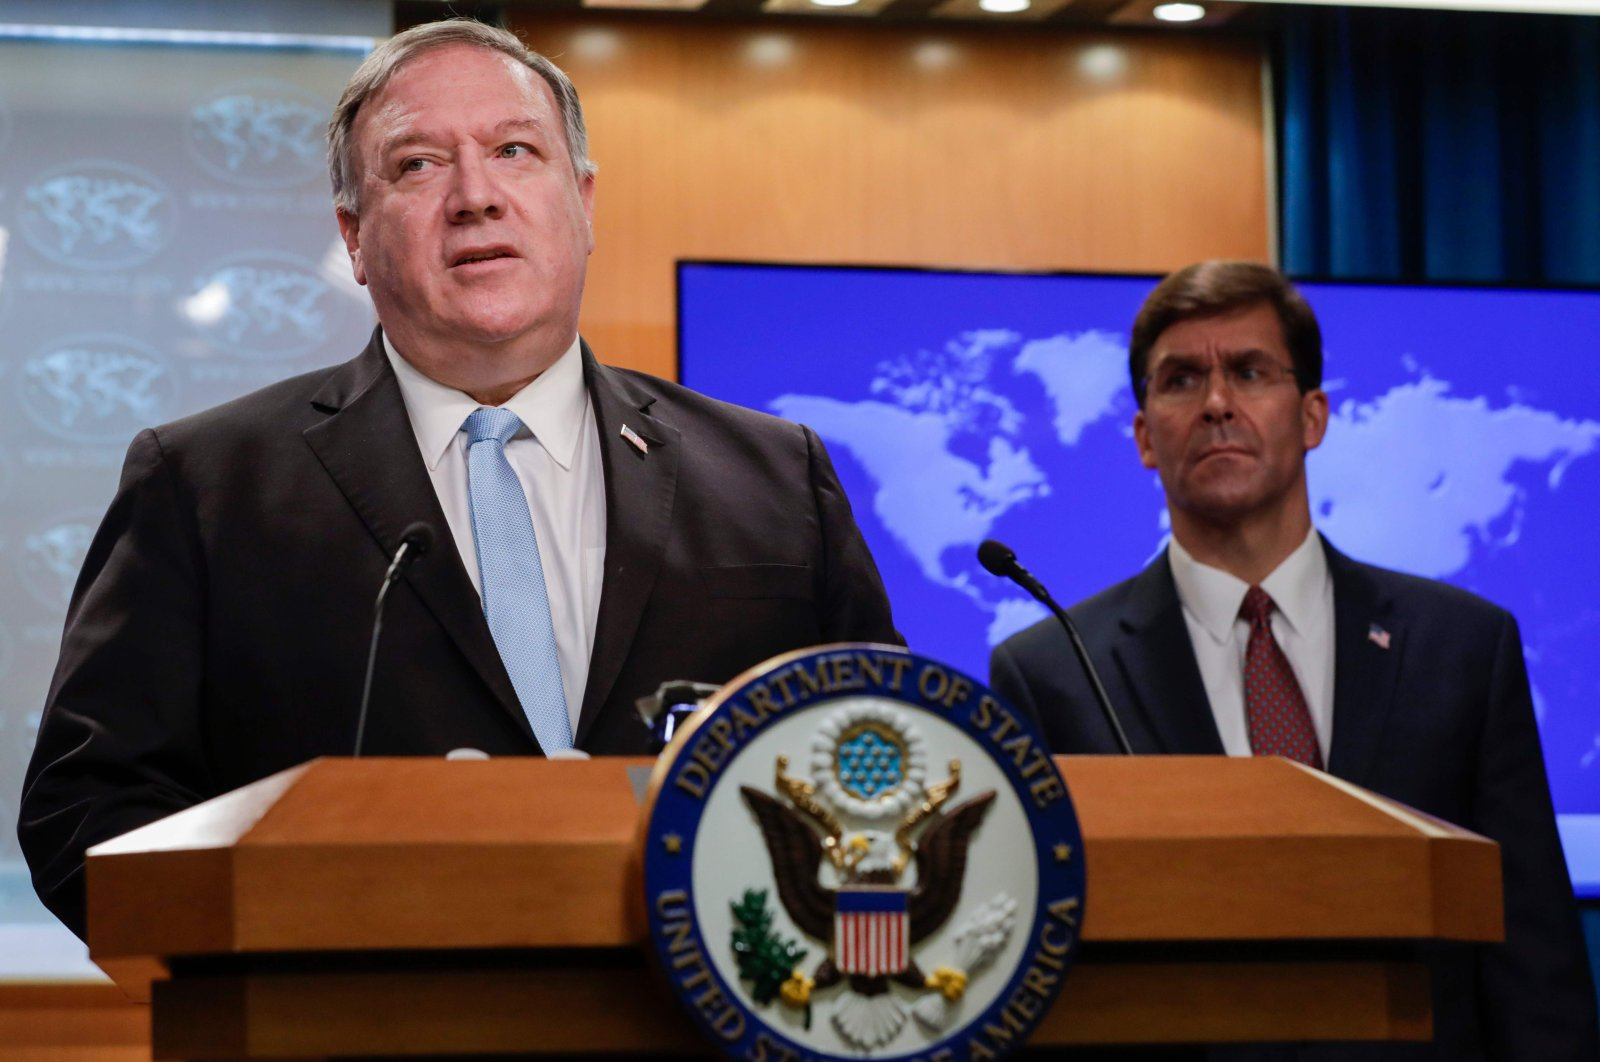 U.S. Secretary of State Mike Pompeo (L) holds a joint news conference on the International Criminal Court with U.S. Defense Secretary Mark Esper (R), at the State Department, Washington, D.C., June 11, 2020. (AFP Photo)